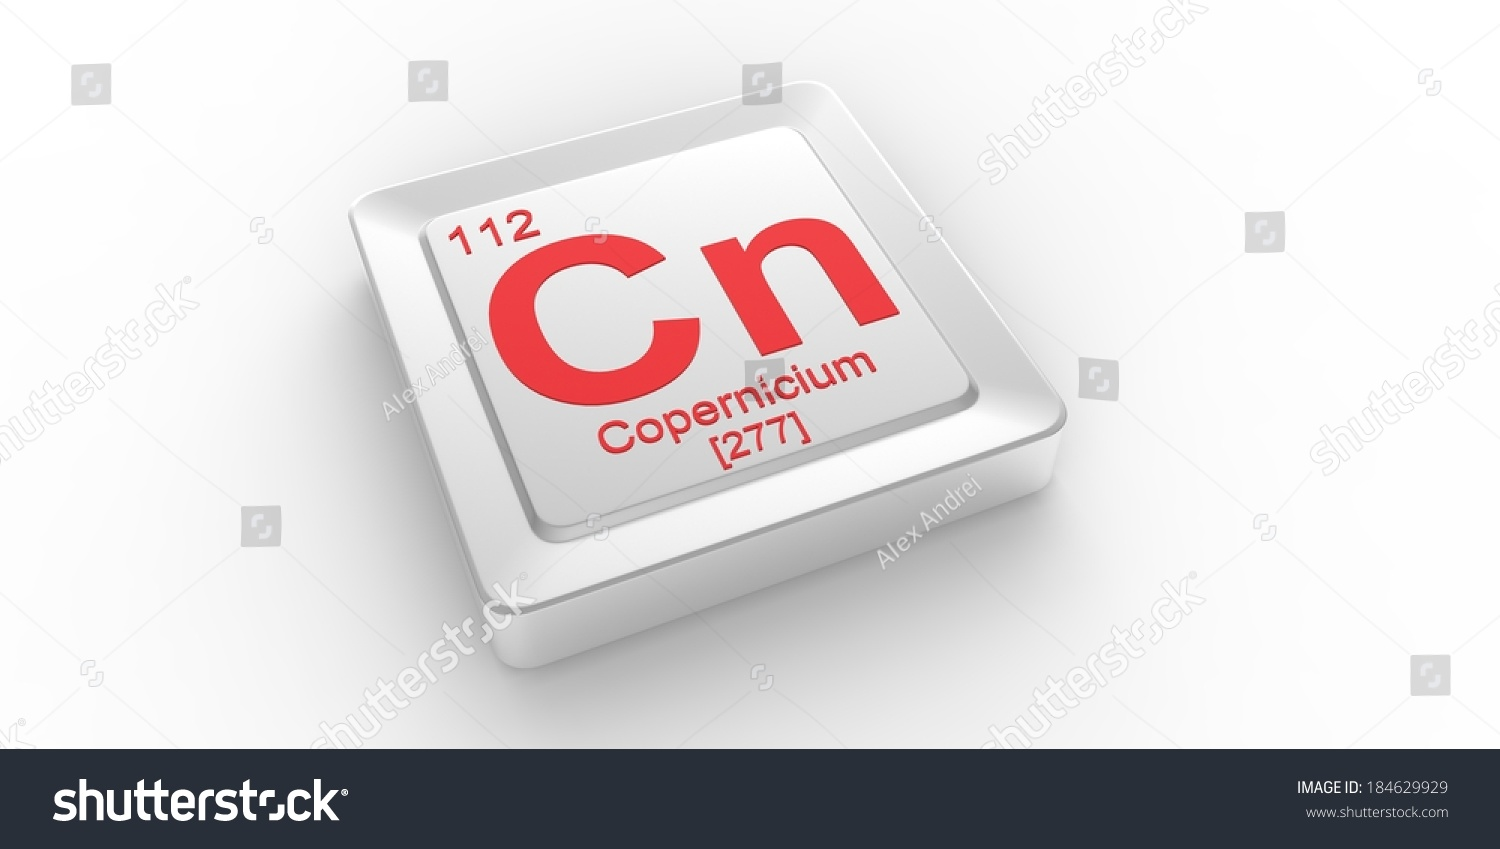 Cn element periodic table image collections periodic table images cn periodic table element images periodic table images cn periodic table choice image periodic table images gamestrikefo Choice Image